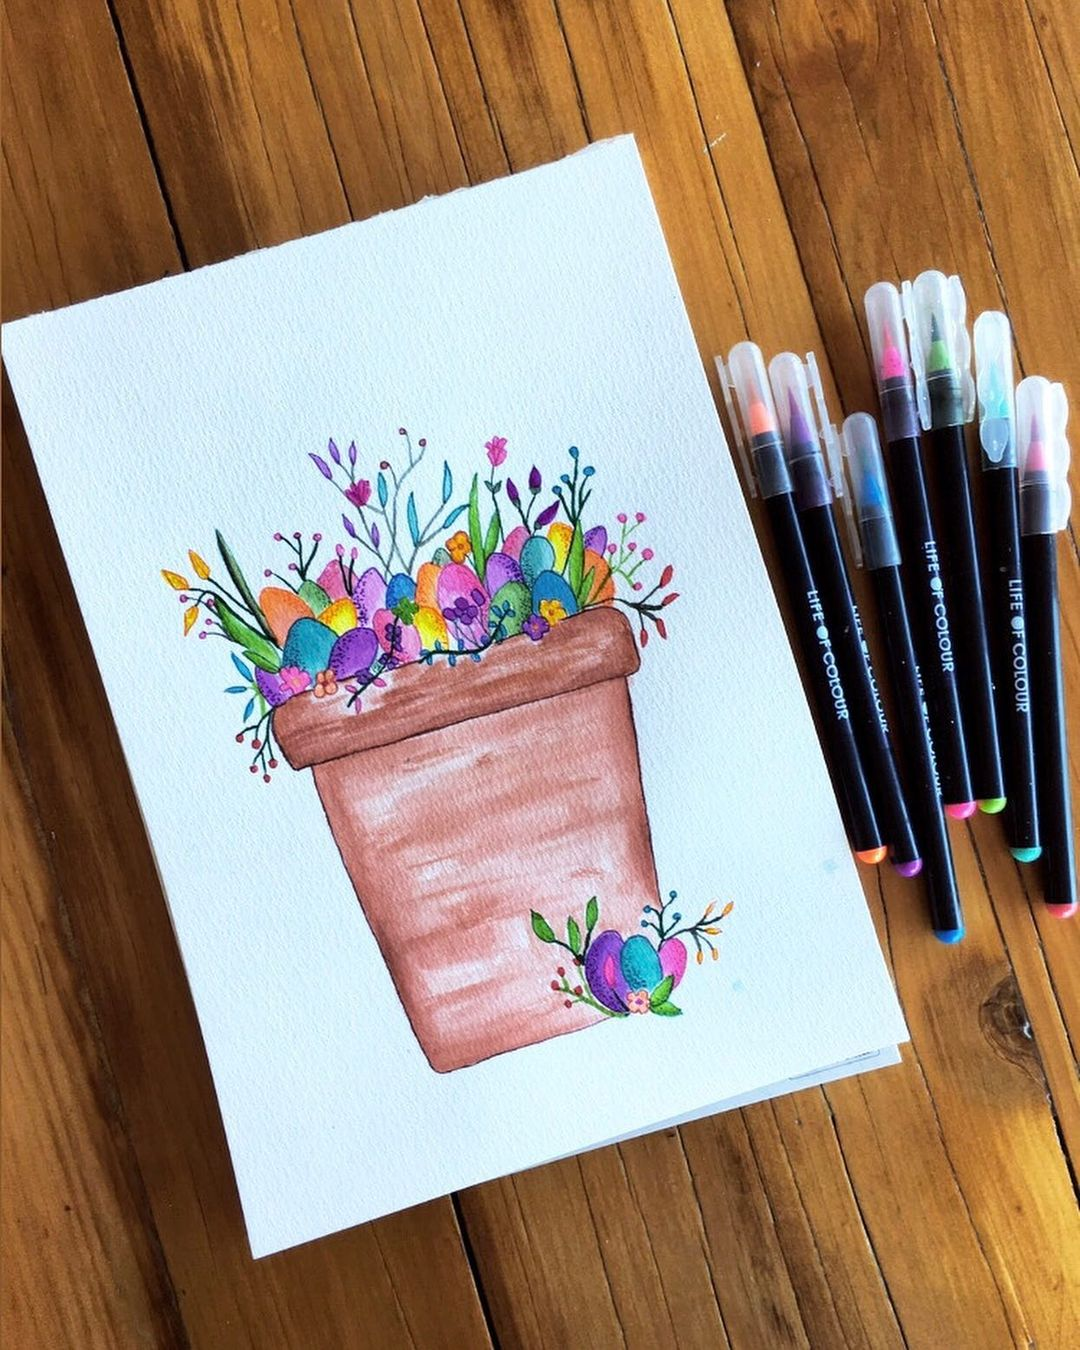 Easter themed watercolour painting